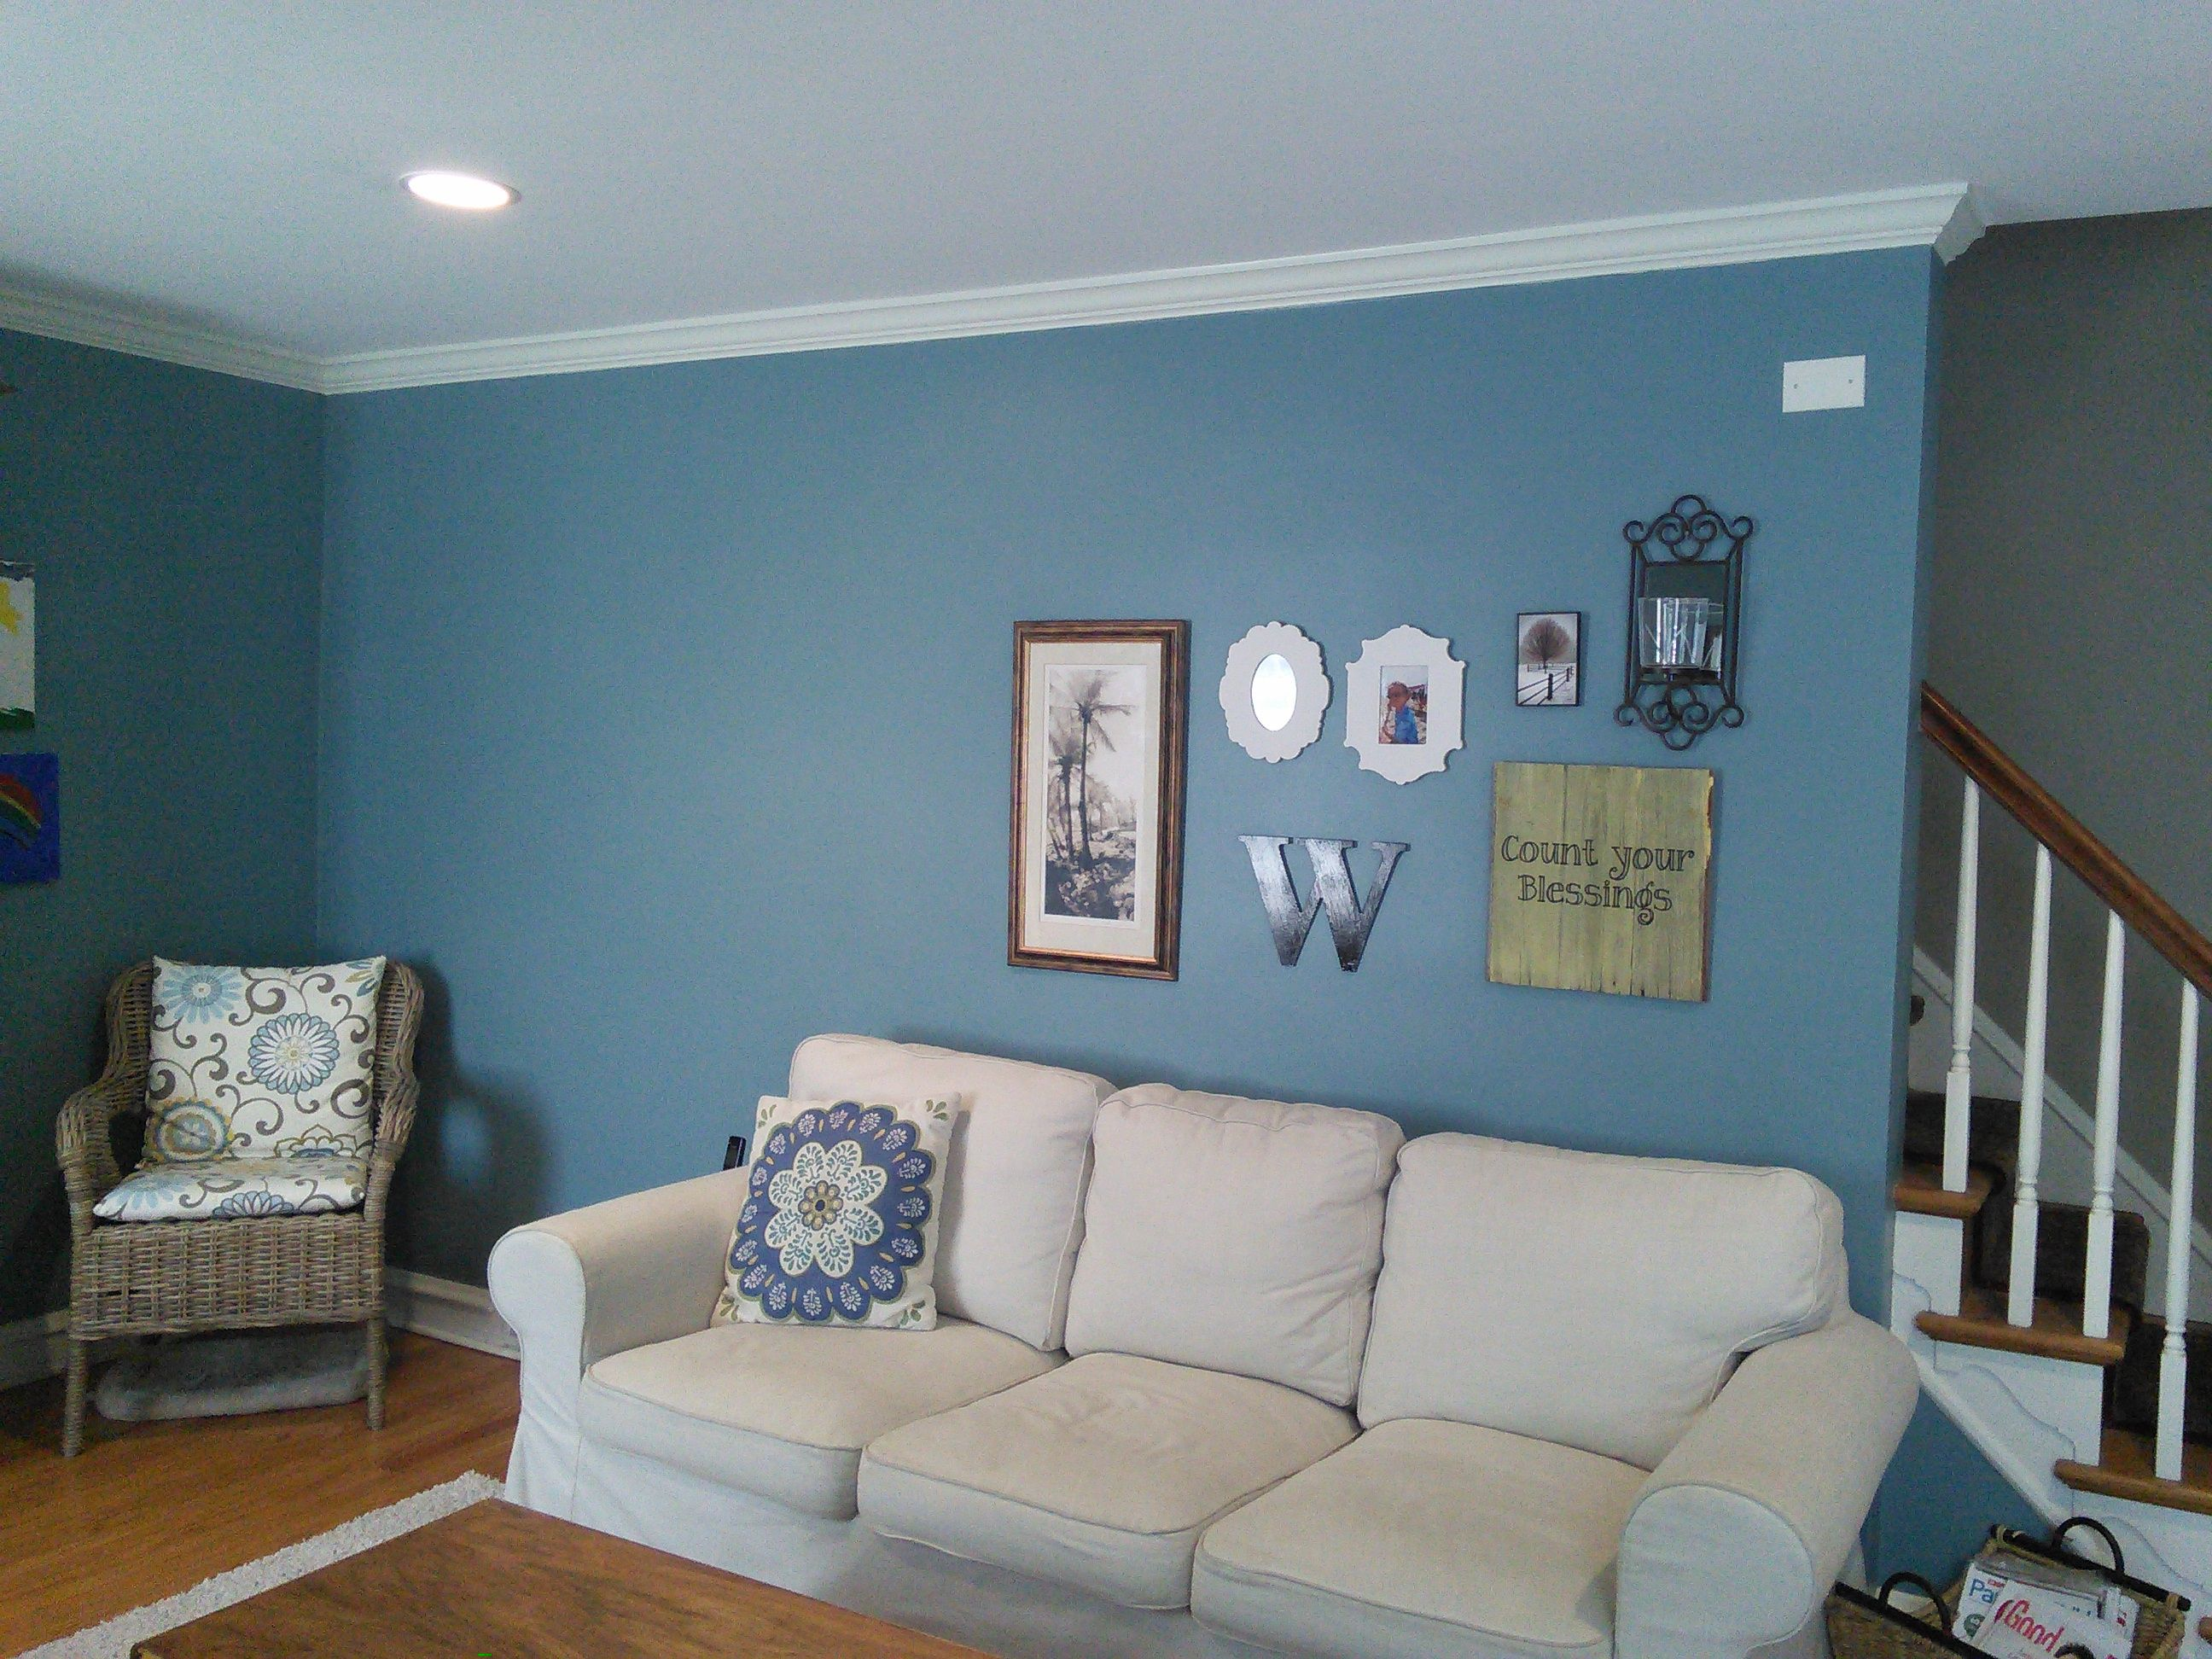 Sherwin Williams Tranquil Aqua 7611 Blue Bedroom Walls